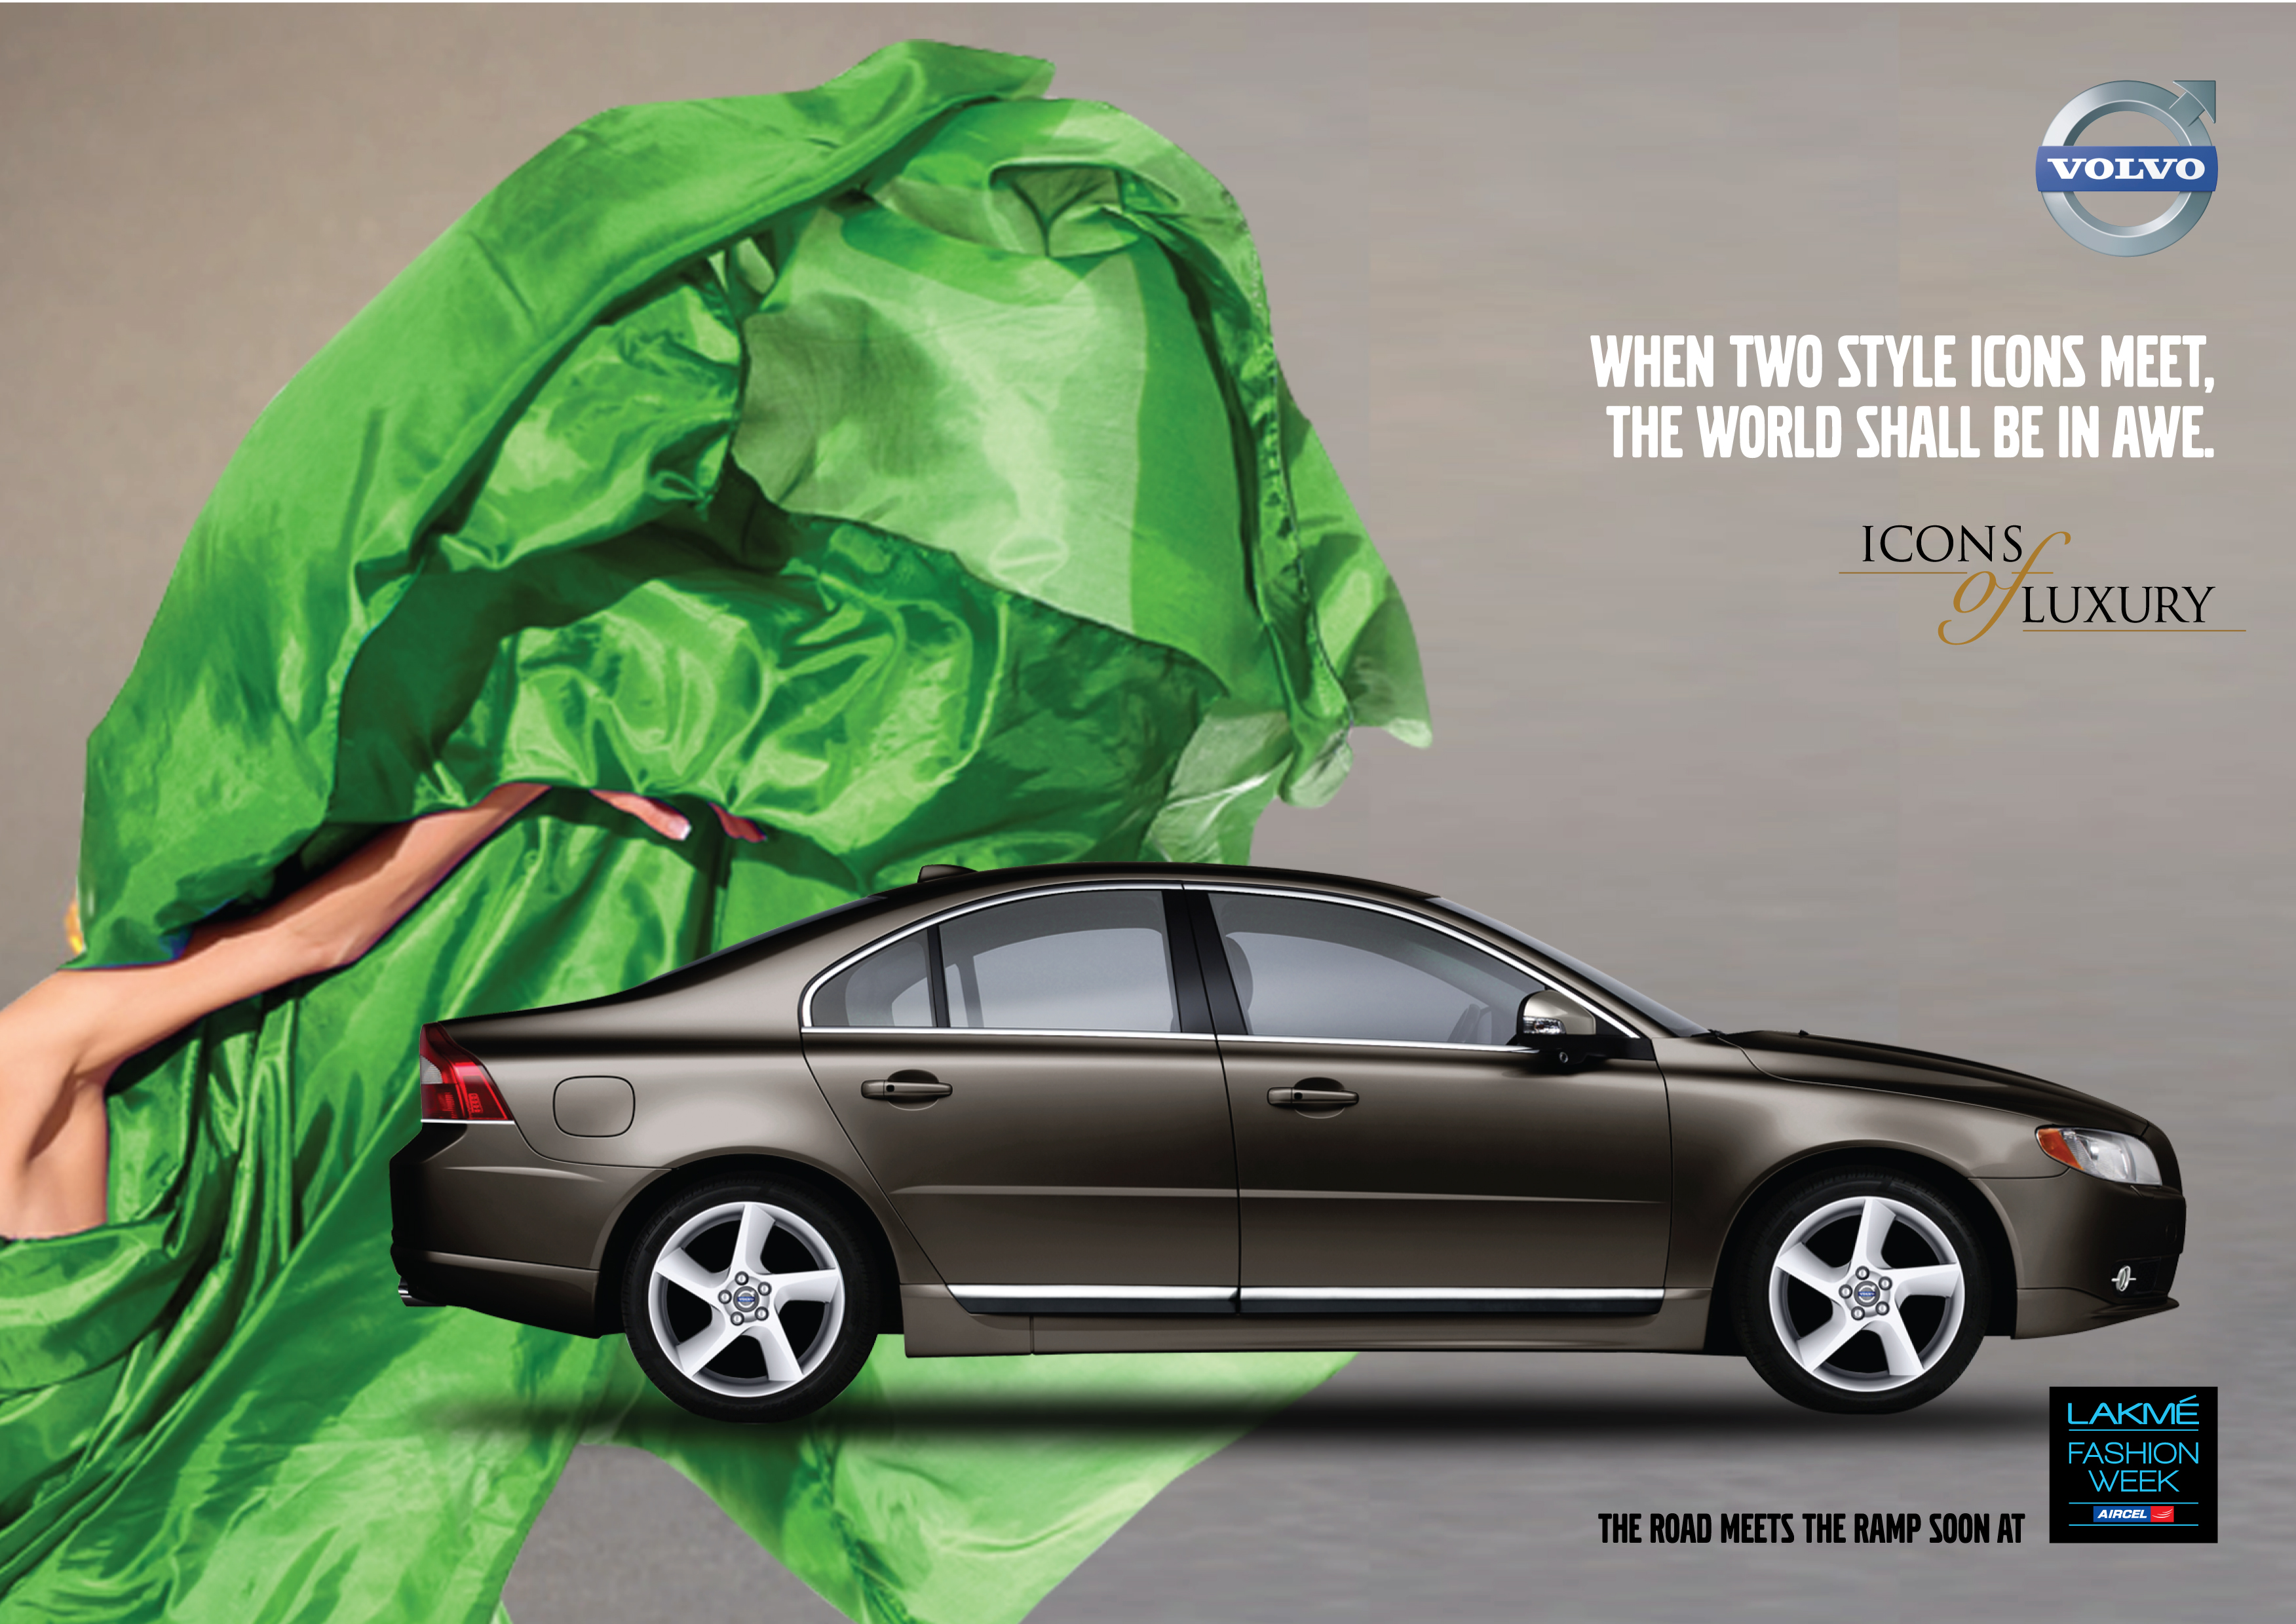 July 11, 2012-Volvo-Cars-are-the-Official-Car-Partner-for-Lakm-Fashion-Week-2012.jpg